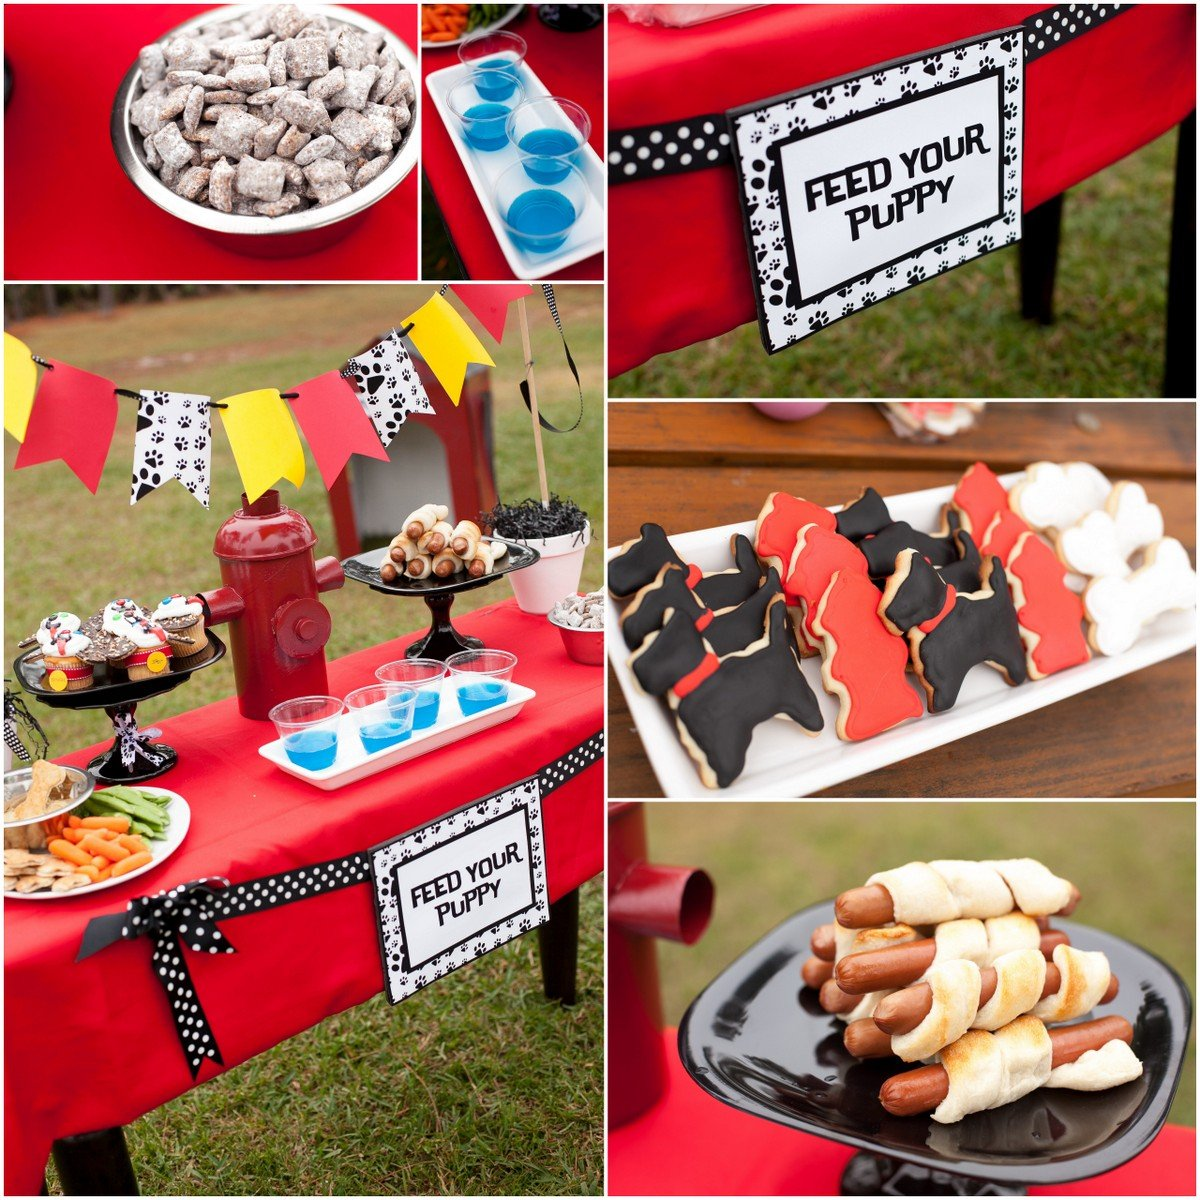 20 Easy Ideas For A Puppy Party On A Budget  Page 3 Of 6. Home And Kitchen Accessories. Red Kitchen Splashbacks. Very Small Kitchen Storage Ideas. Modern Cream Kitchen Cabinets. Modern Kitchen Equipment. Kitchen Island Wine Storage. Lime Green Kitchen Accessories. Toy Kitchen Food Accessories